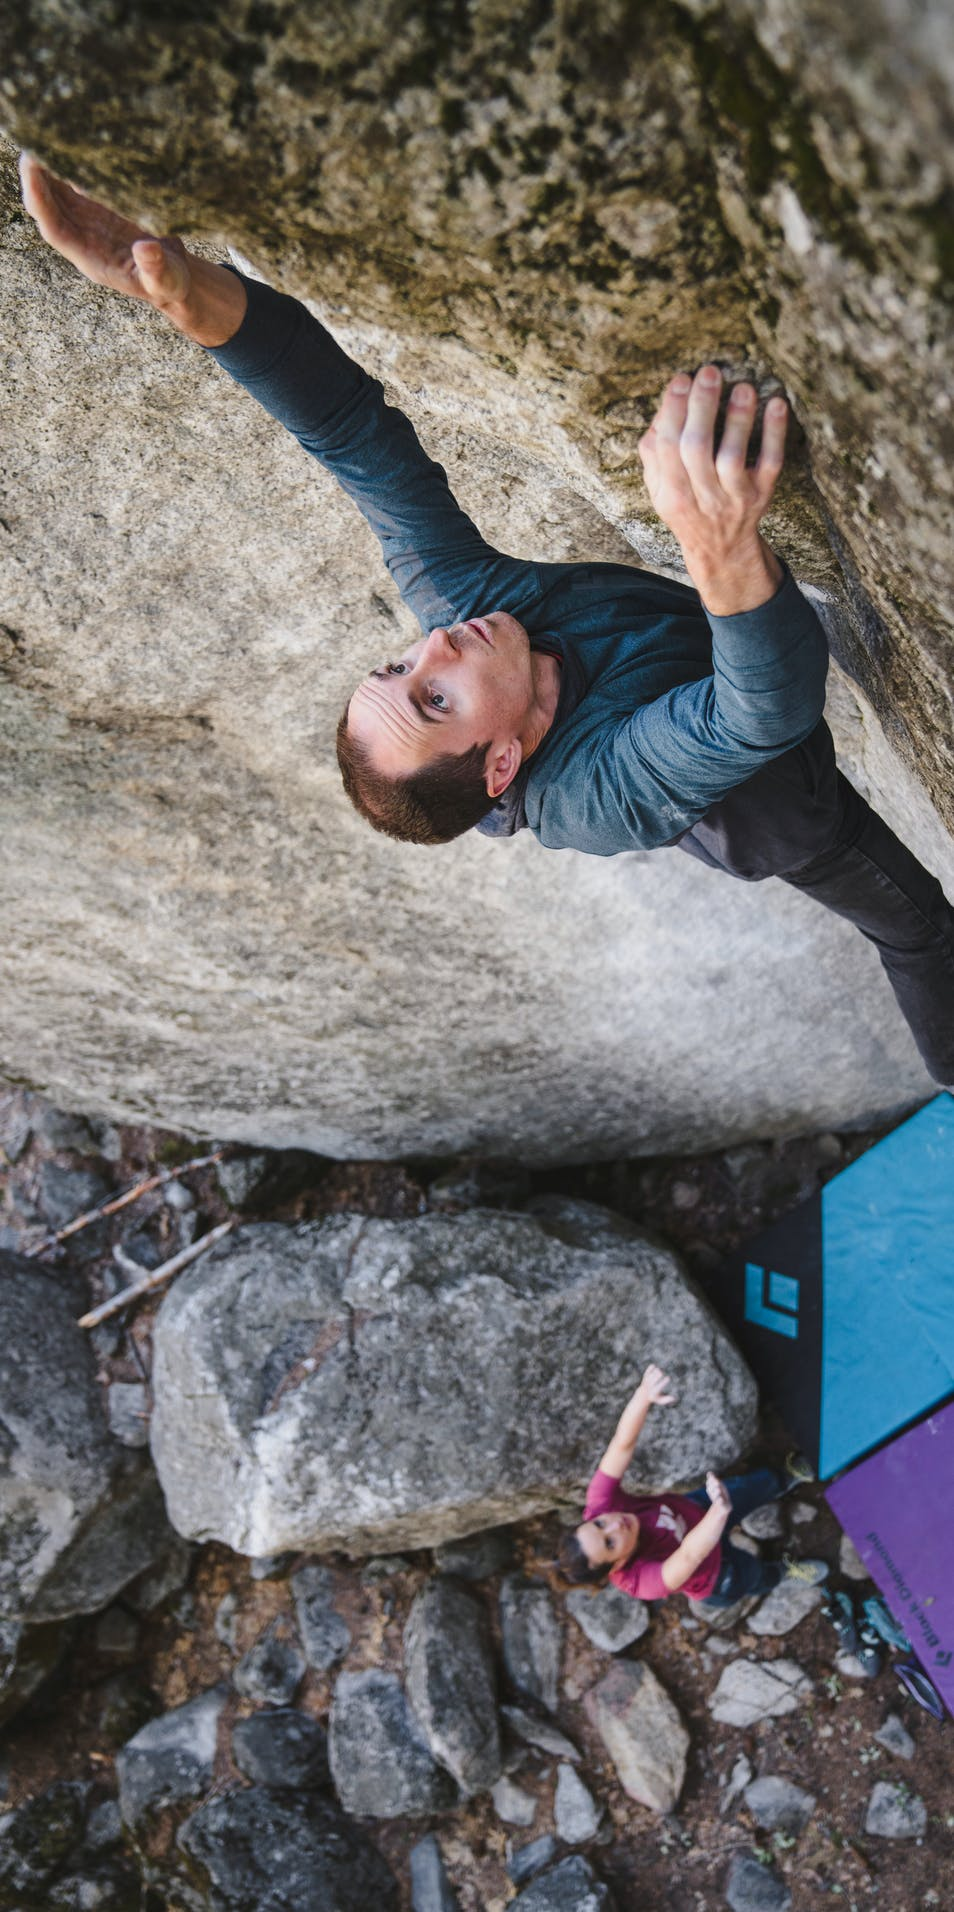 BD Athlete Carlo Denali bouldering outside